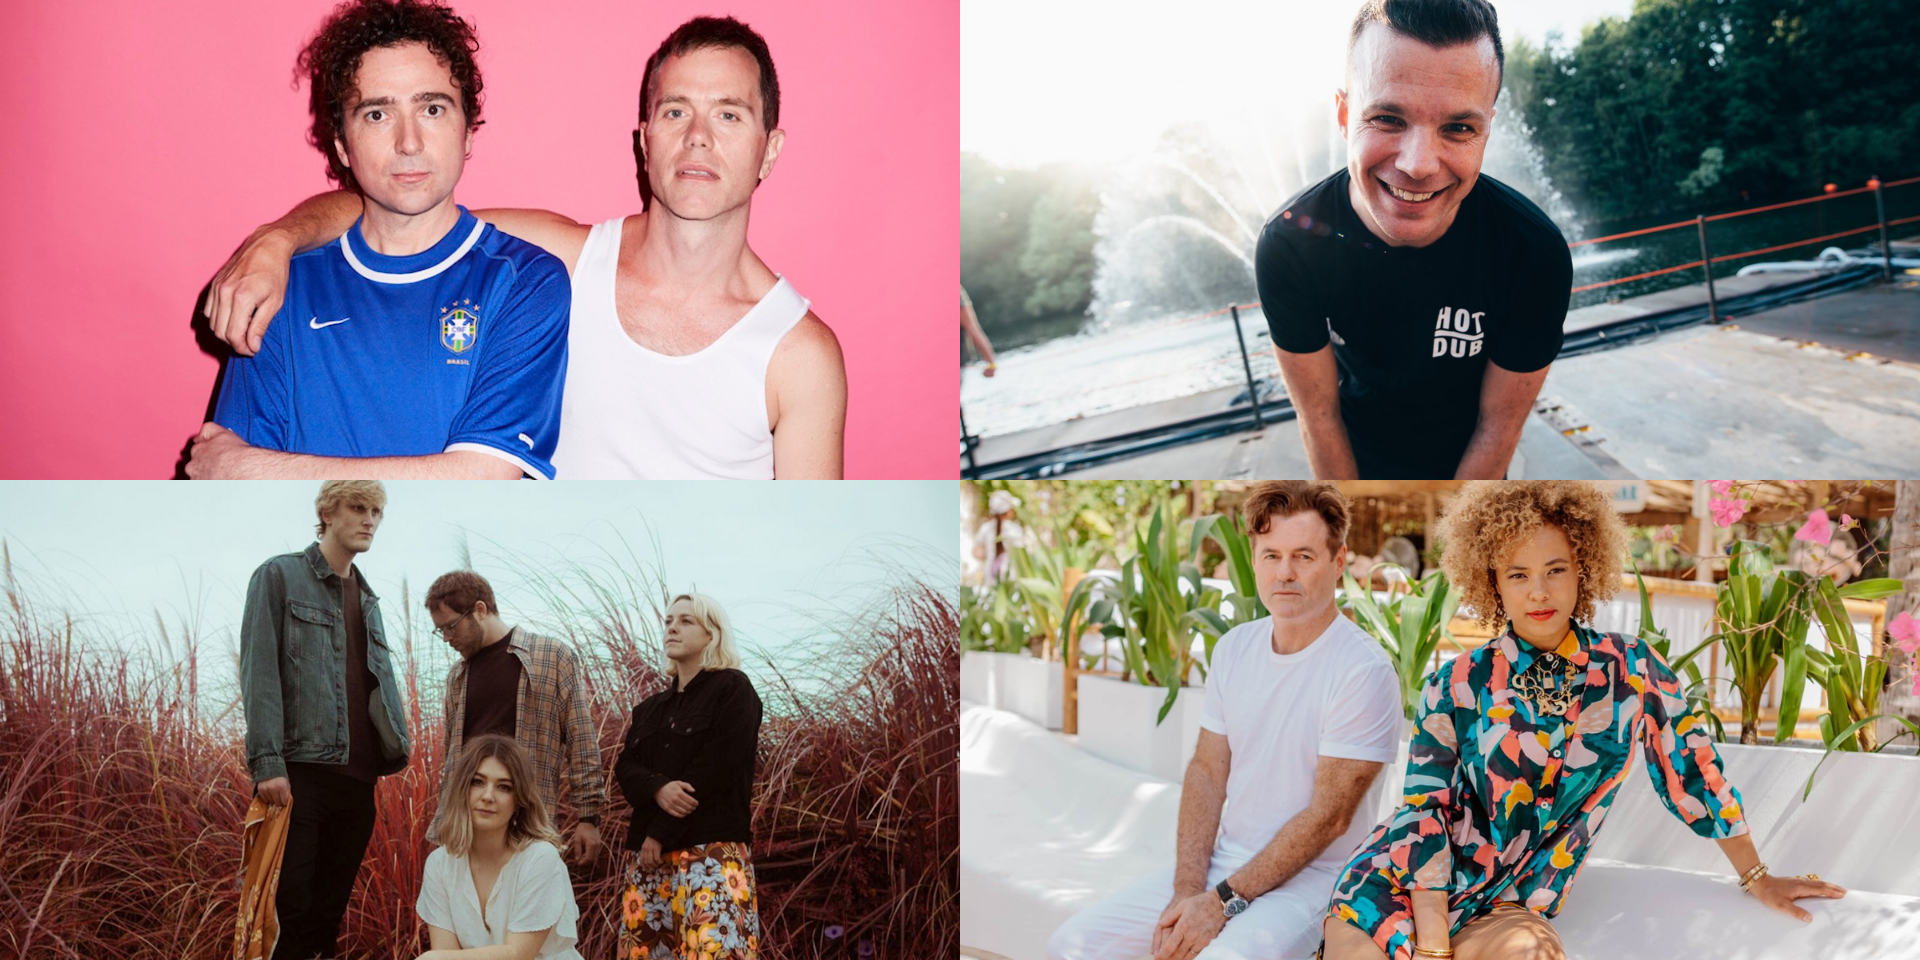 The Presets, Sneaky Sound System, Hot Dub Time Machine, Yumi Zouma, and more to perform at New Zealand's Snow Machine Festival